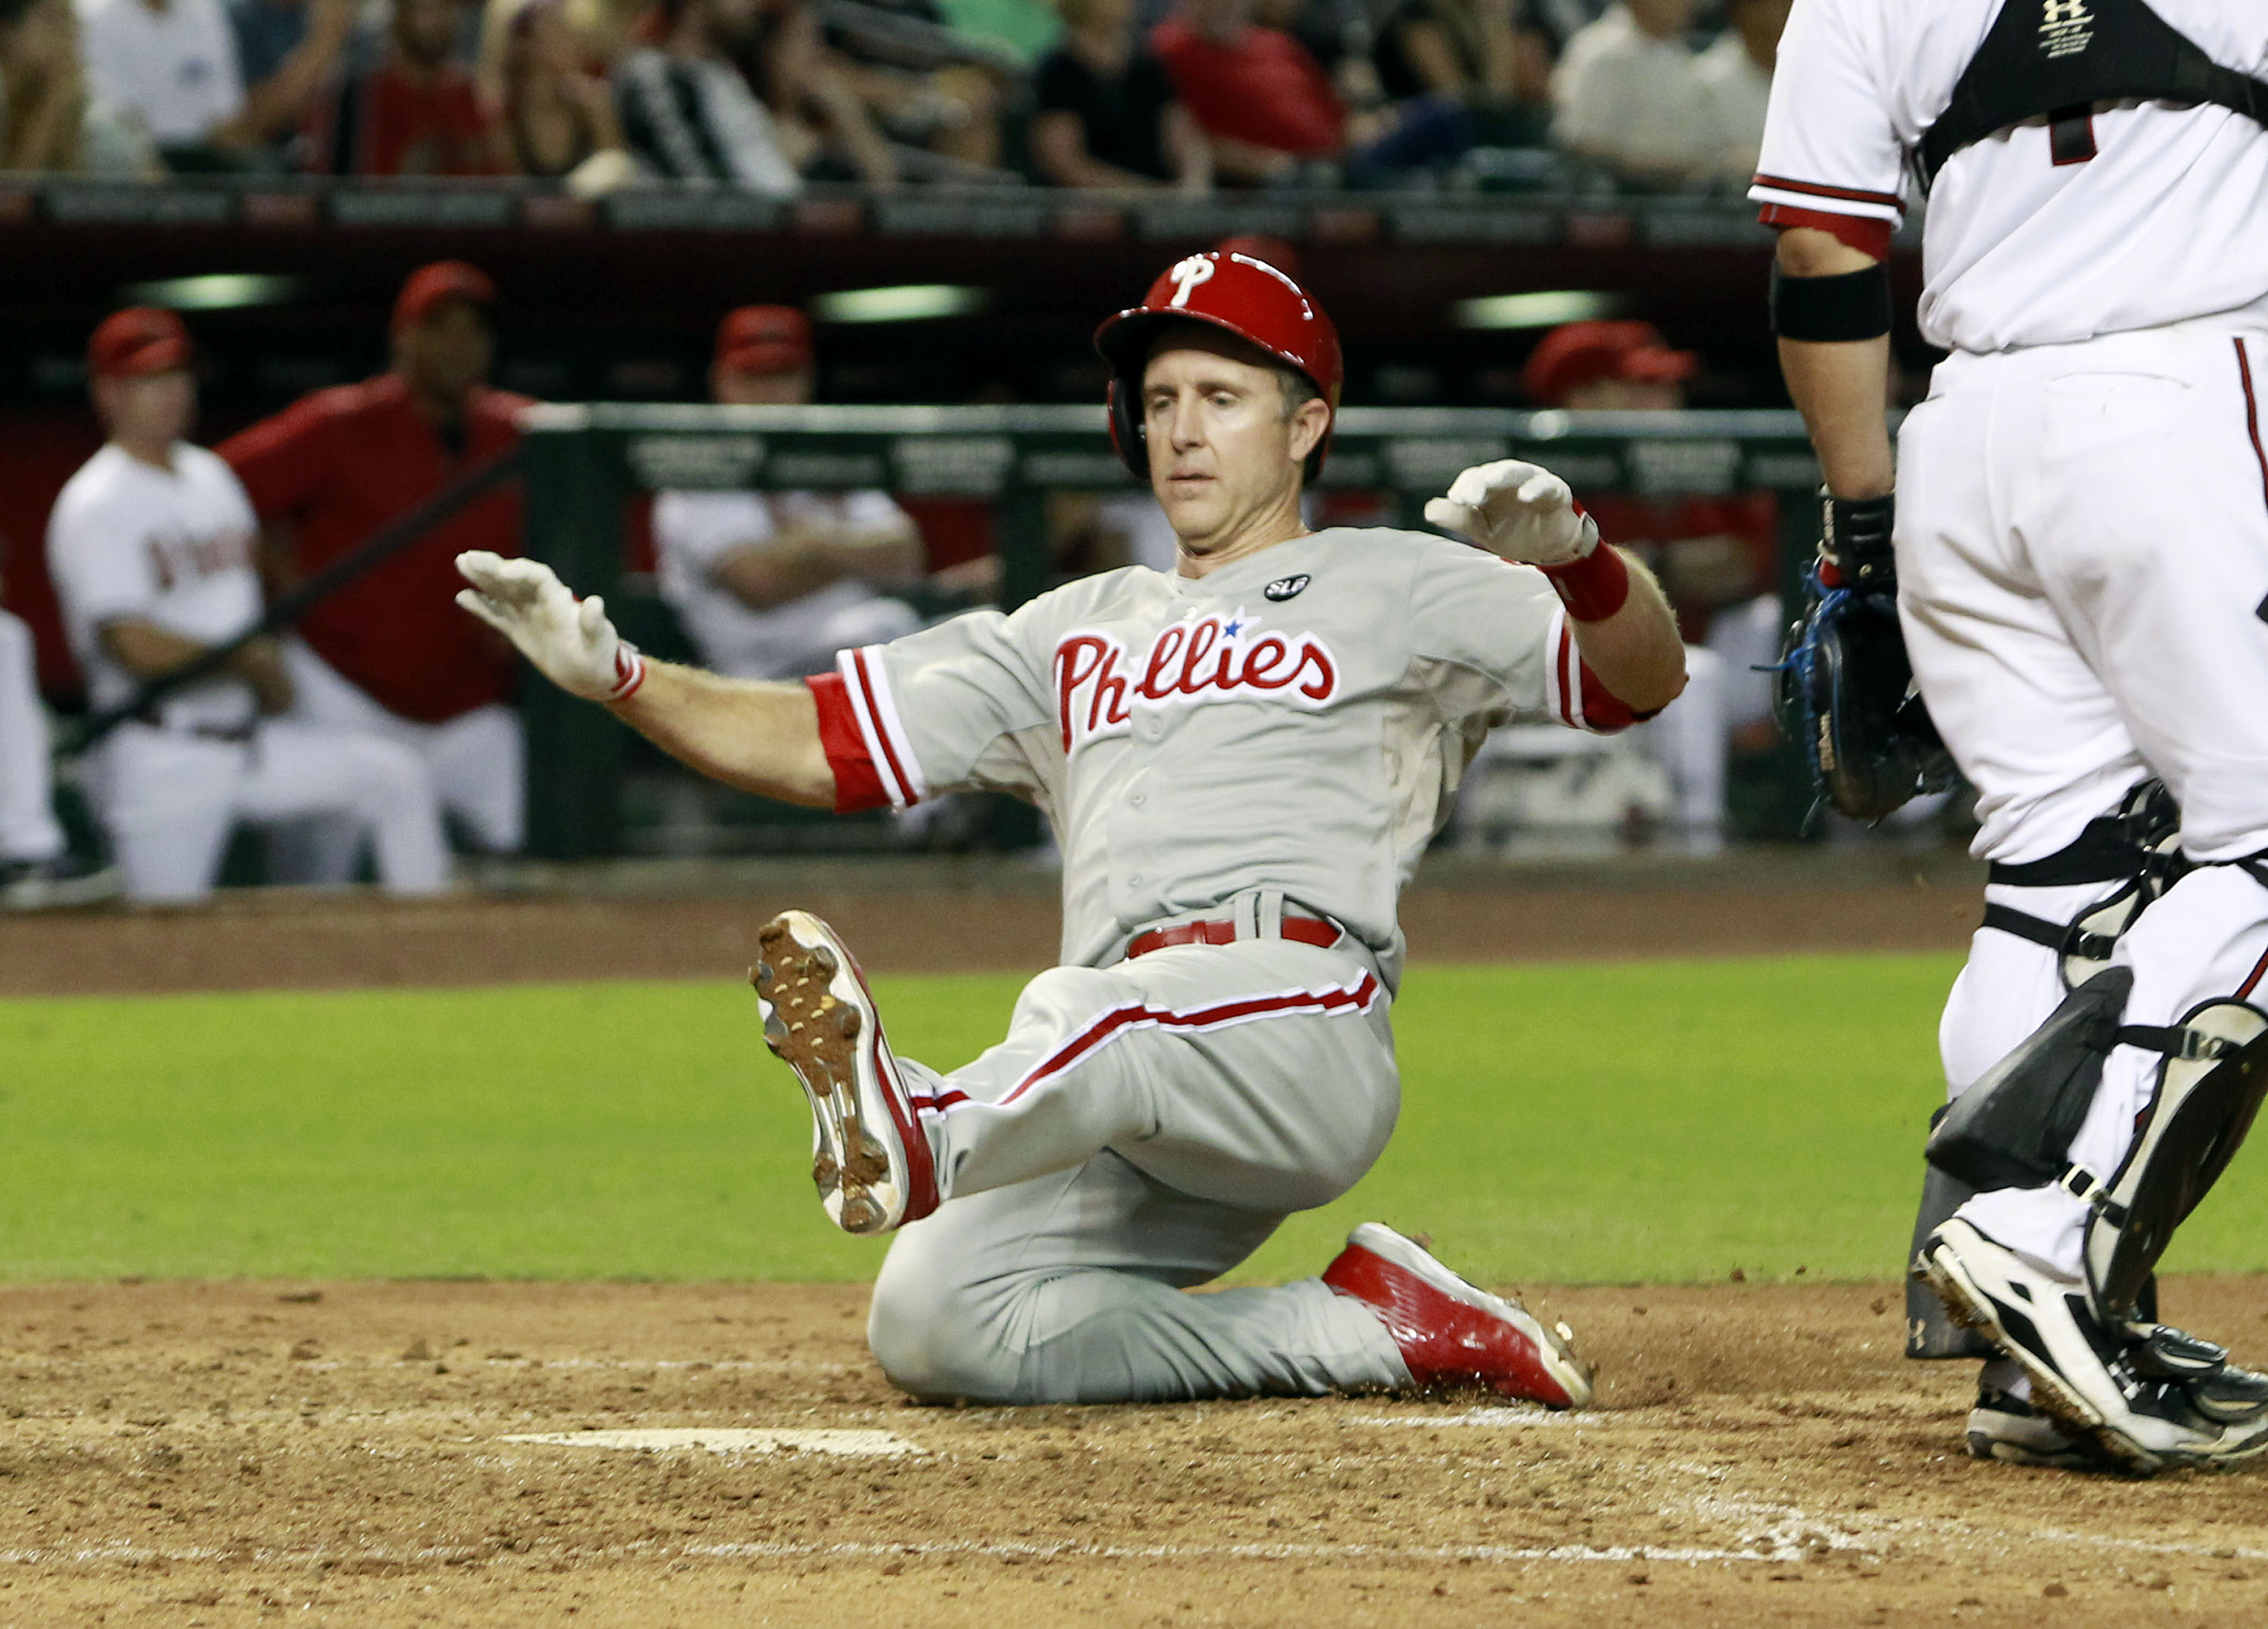 Philadelphia Phillies' Chase Utley, left, slides home to score a run against Arizona Diamondbacks on an RBI double by teammate Cesar Hernandez during the fifth inning of a baseball game, Monday, Aug. 10, 2015, in Phoenix. (AP Photo/Ralph Freso)